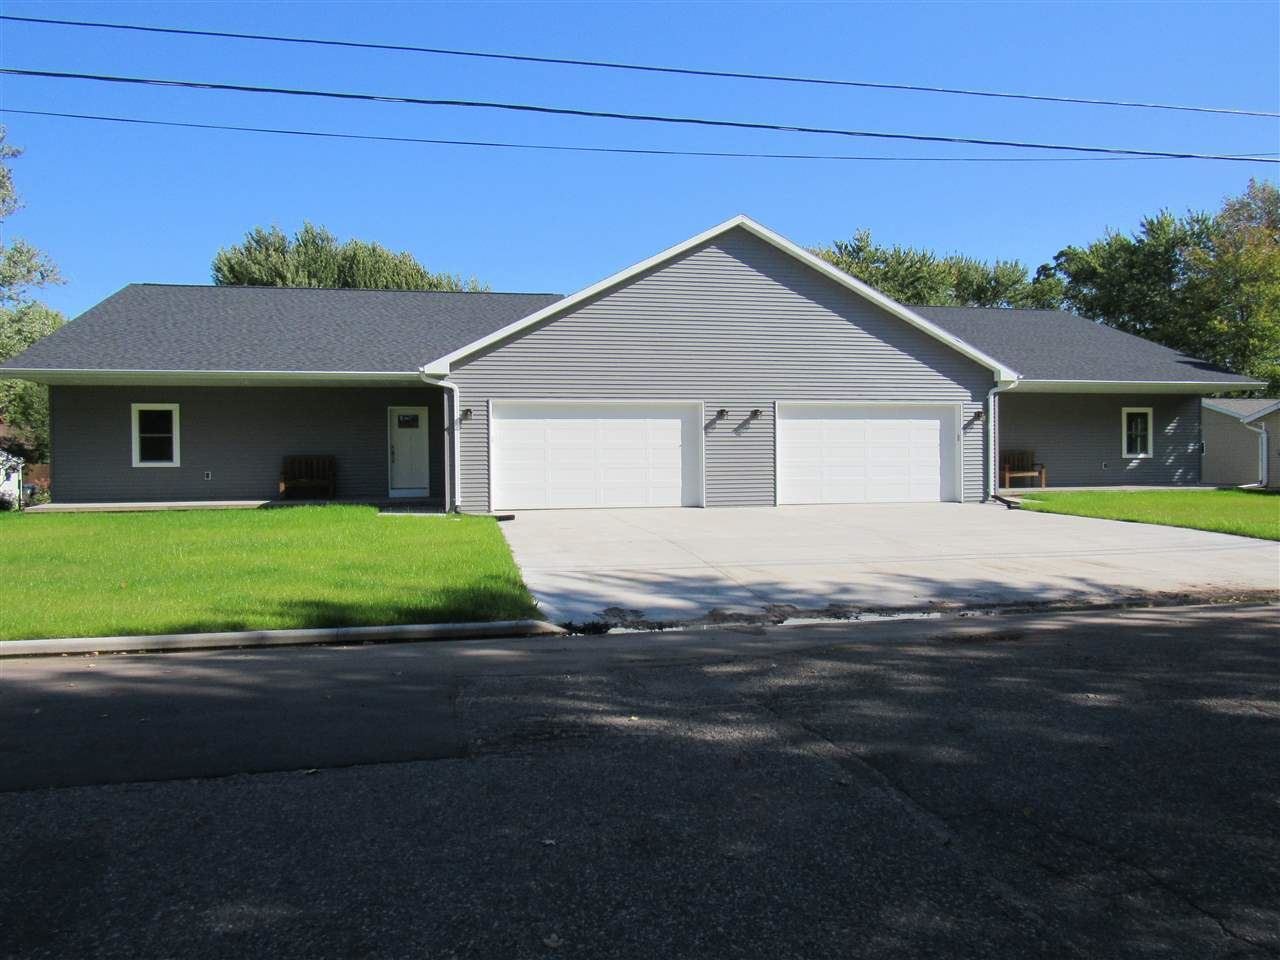 206 S WASHINGTON Street, Berlin, WI 54923 - MLS#: 50212956